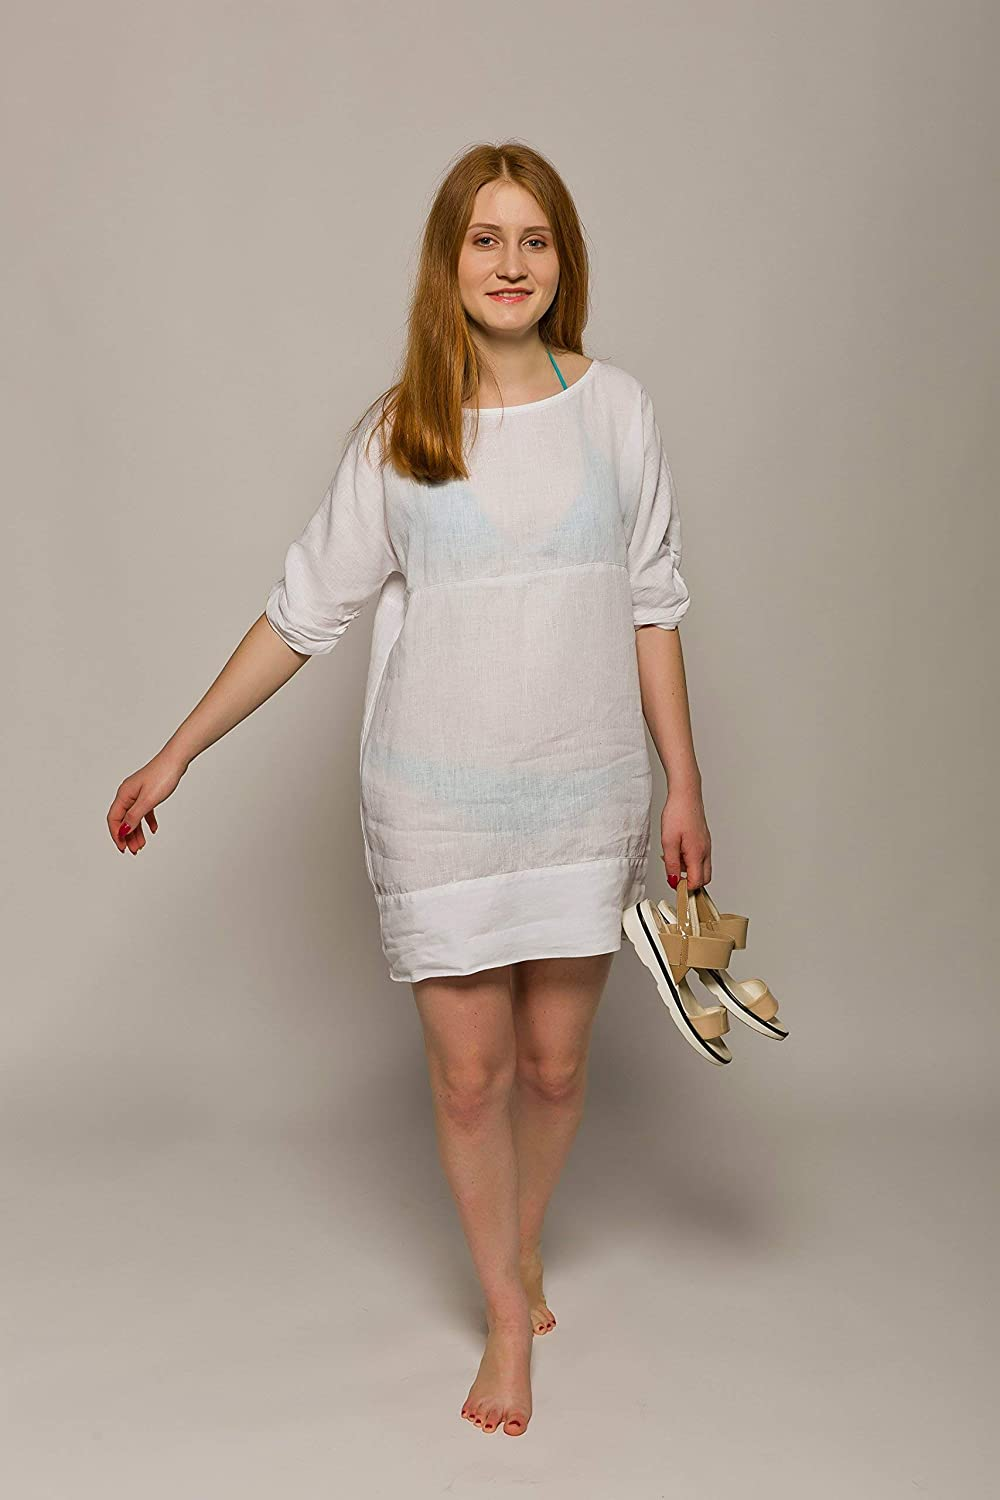 eff5f86a8a This beautiful 100% linen loosely fit beach tunic dress will become an  essential part of your wardrobe. Classic yet trendy